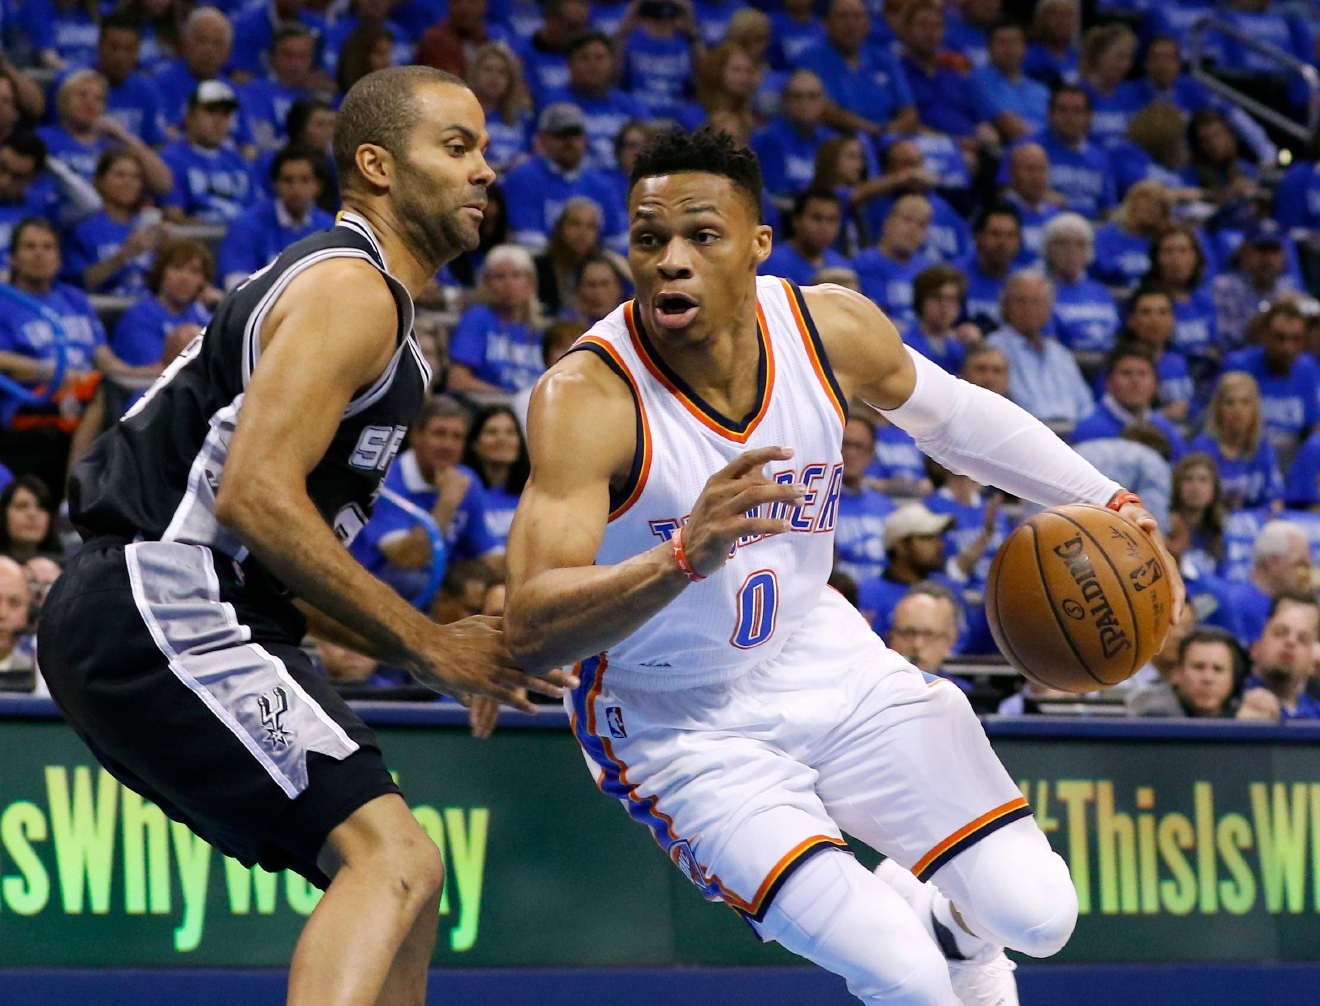 Oklahoma City Thunder guard Russell Westbrook (0) drives around San Antonio Spurs guard Tony Parker, left, in the first quarter of Game 6 of a second-round NBA basketball playoff series in Oklahoma City, Thursday, May 12, 2016. (AP Photo/Alonzo Adams)